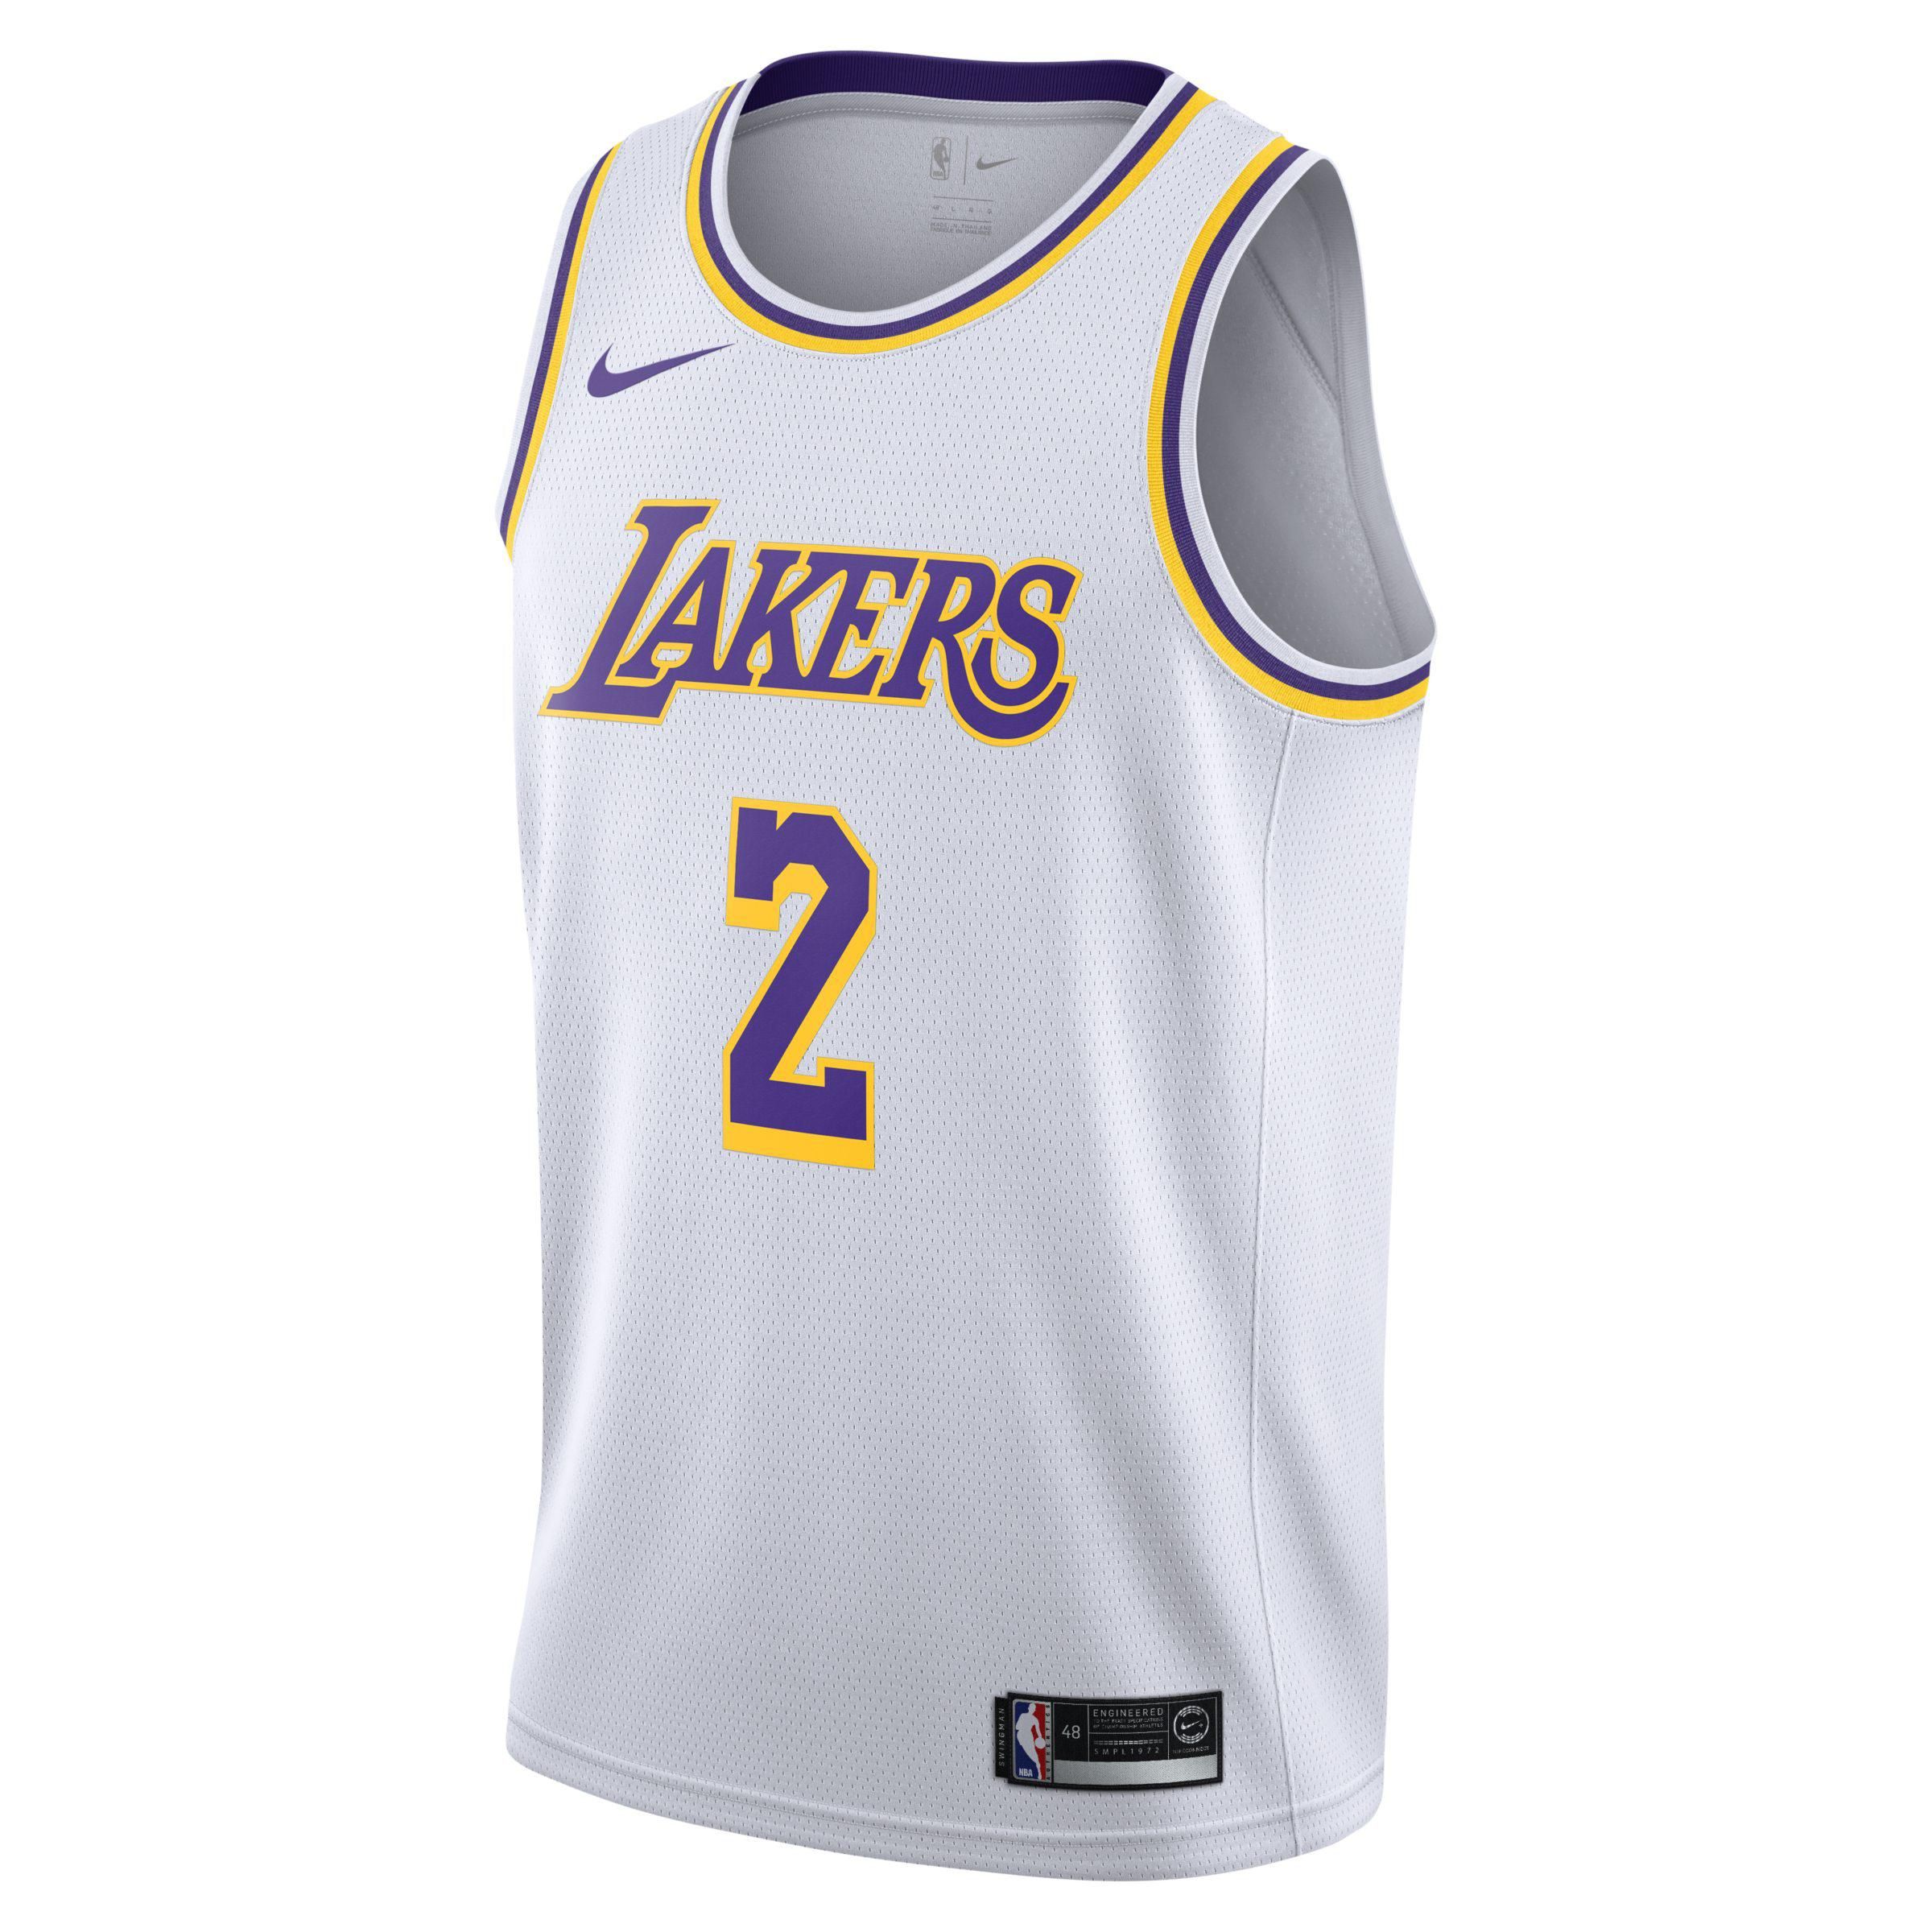 829612a725c Nike. Men s White Lonzo Ball Association Edition Swingman (los Angeles  Lakers) Nba Connected Jersey